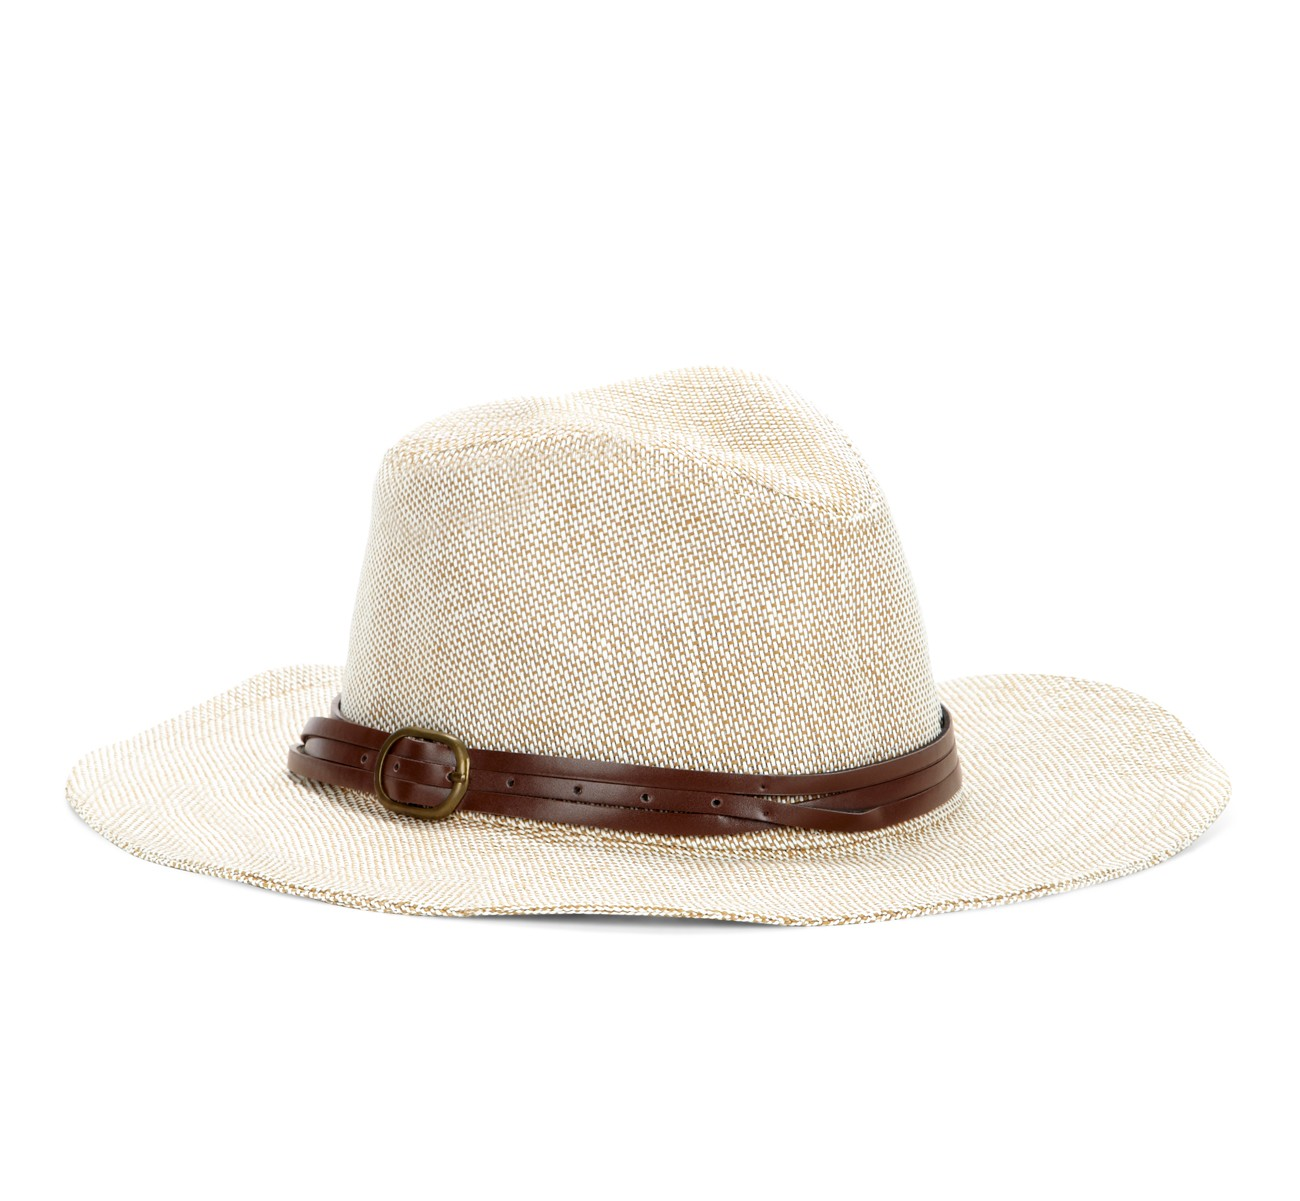 Wide Brim Hats. invalid category id. Wide Brim Hats. Showing 24 of 24 results that match your query. Search Product Result. Product - Tan Wide Brimmed Floppy Hat With Black Ribbon Hat Band. Special Buy. Product Image. Price $ Product Title.